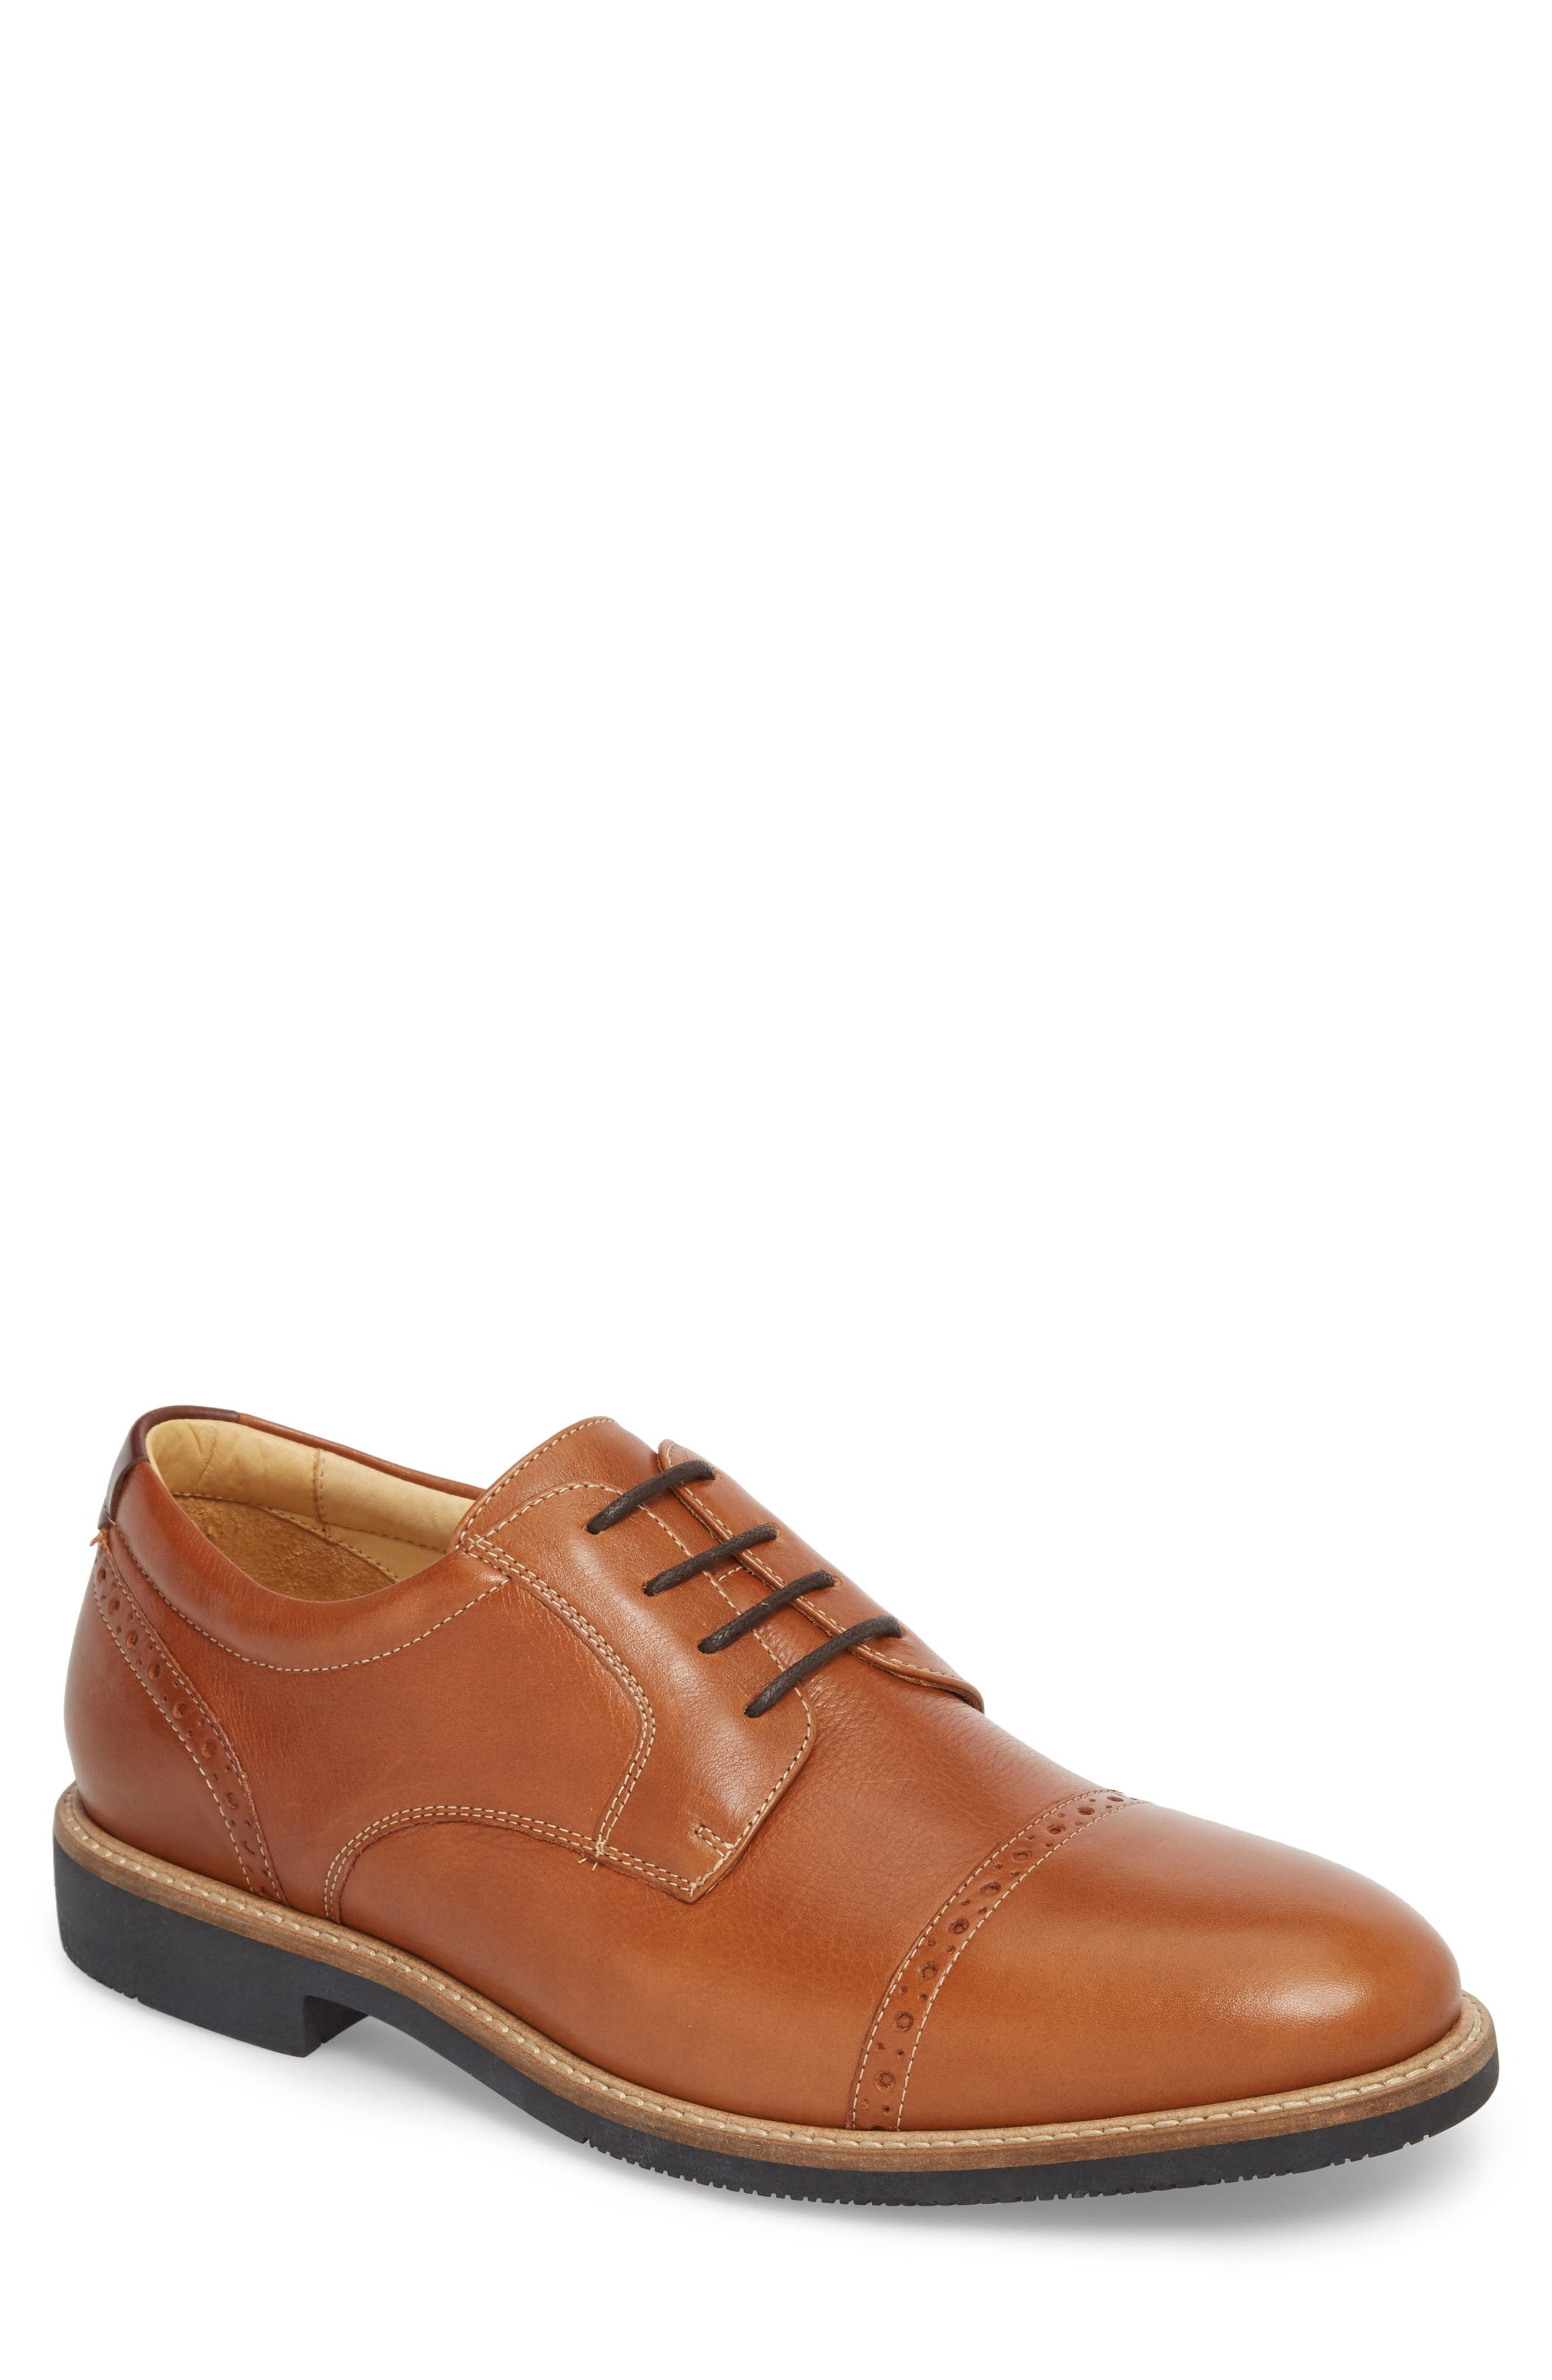 JOHNSTON & MURPHY Barlow Cap Toe Derby, Main, color, TAN LEATHER